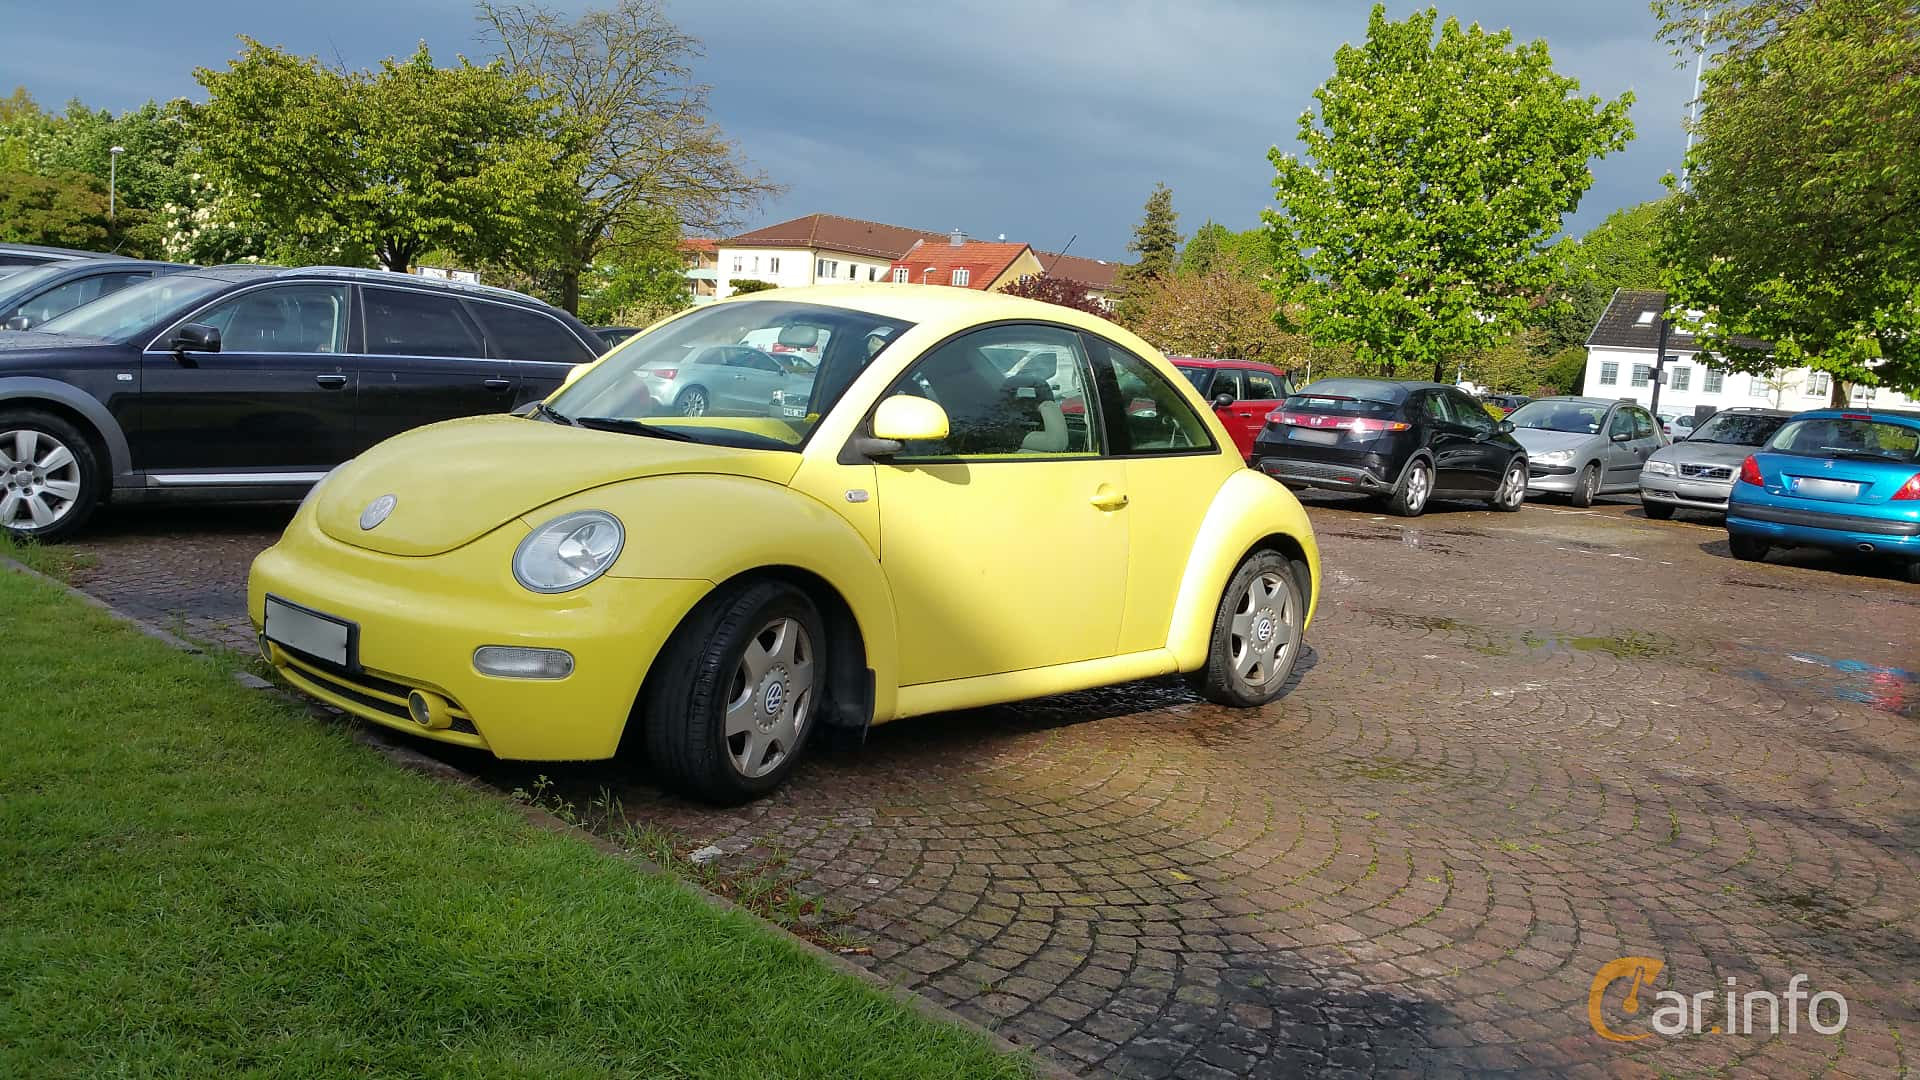 cars t pink various ago been questions is volkswagen sale time driven top but stopped at pic that torn convertible odometer much and all in super beetle dents years hasn for dings fair discussion interior